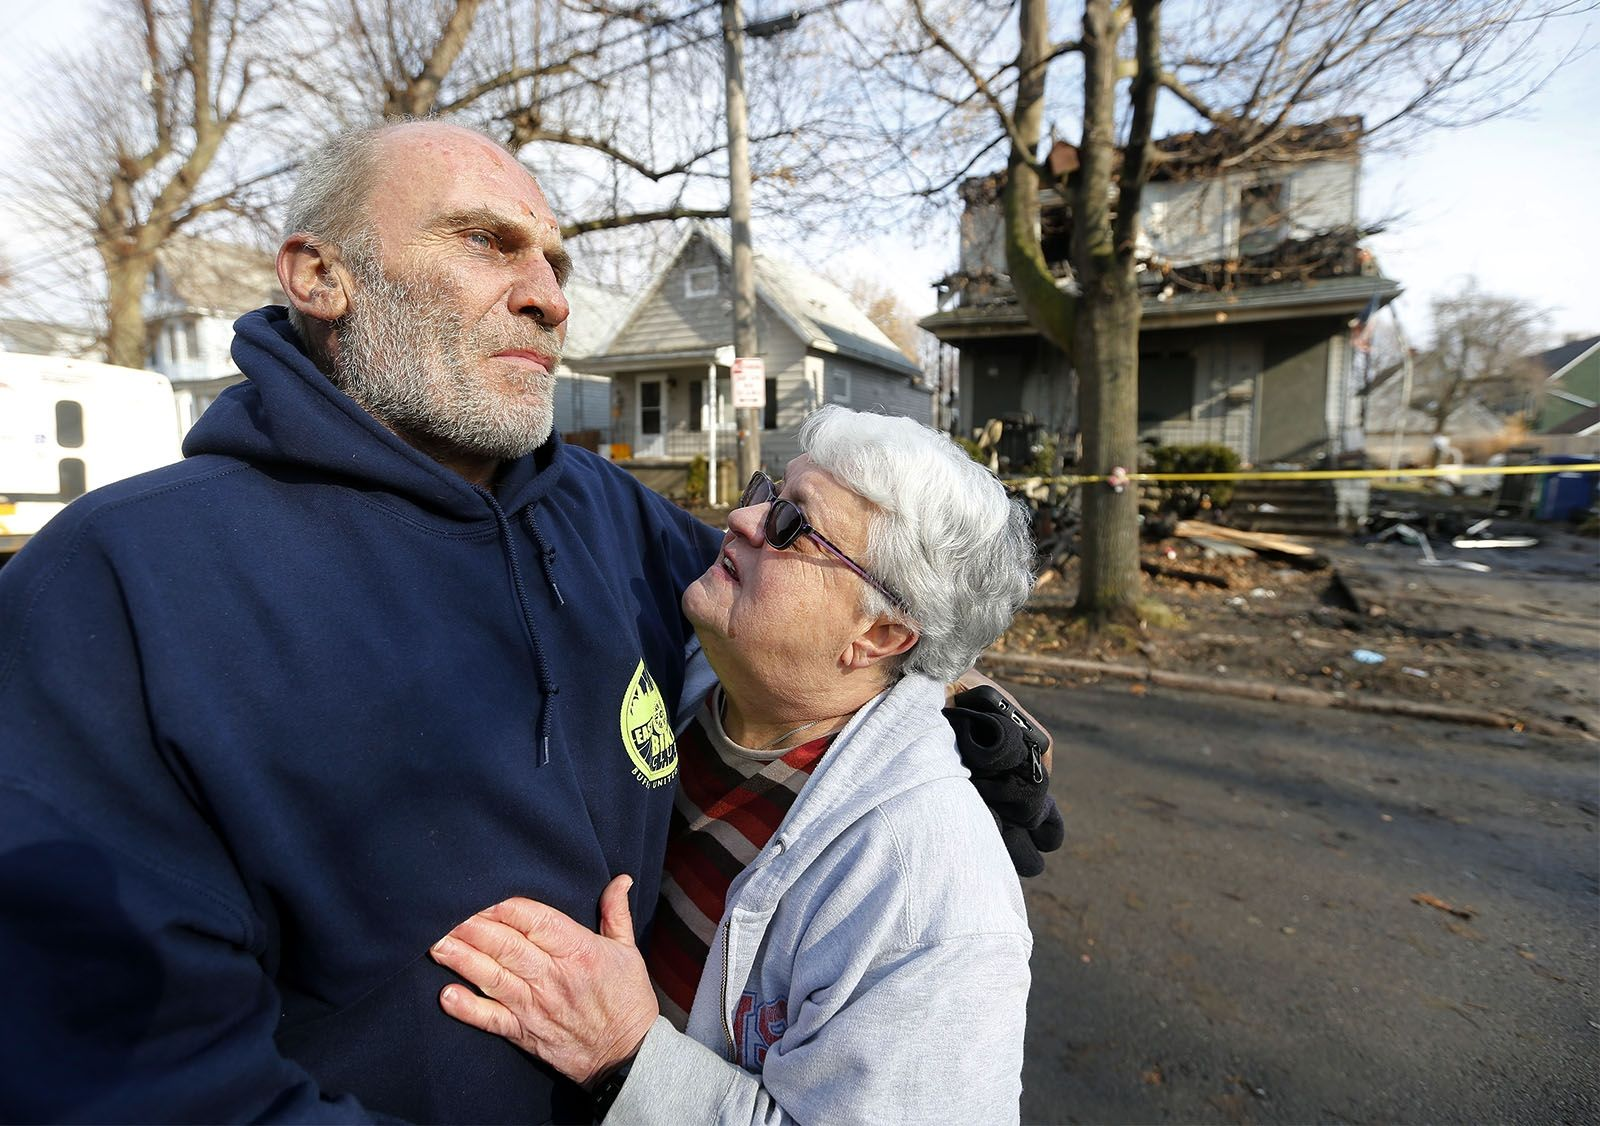 Joseph Conti is comforted by his neighbor Marilyn Ramsdell in front of his home on Benzinger Street where an early morning fire took the life of Conti's 7 year old son.